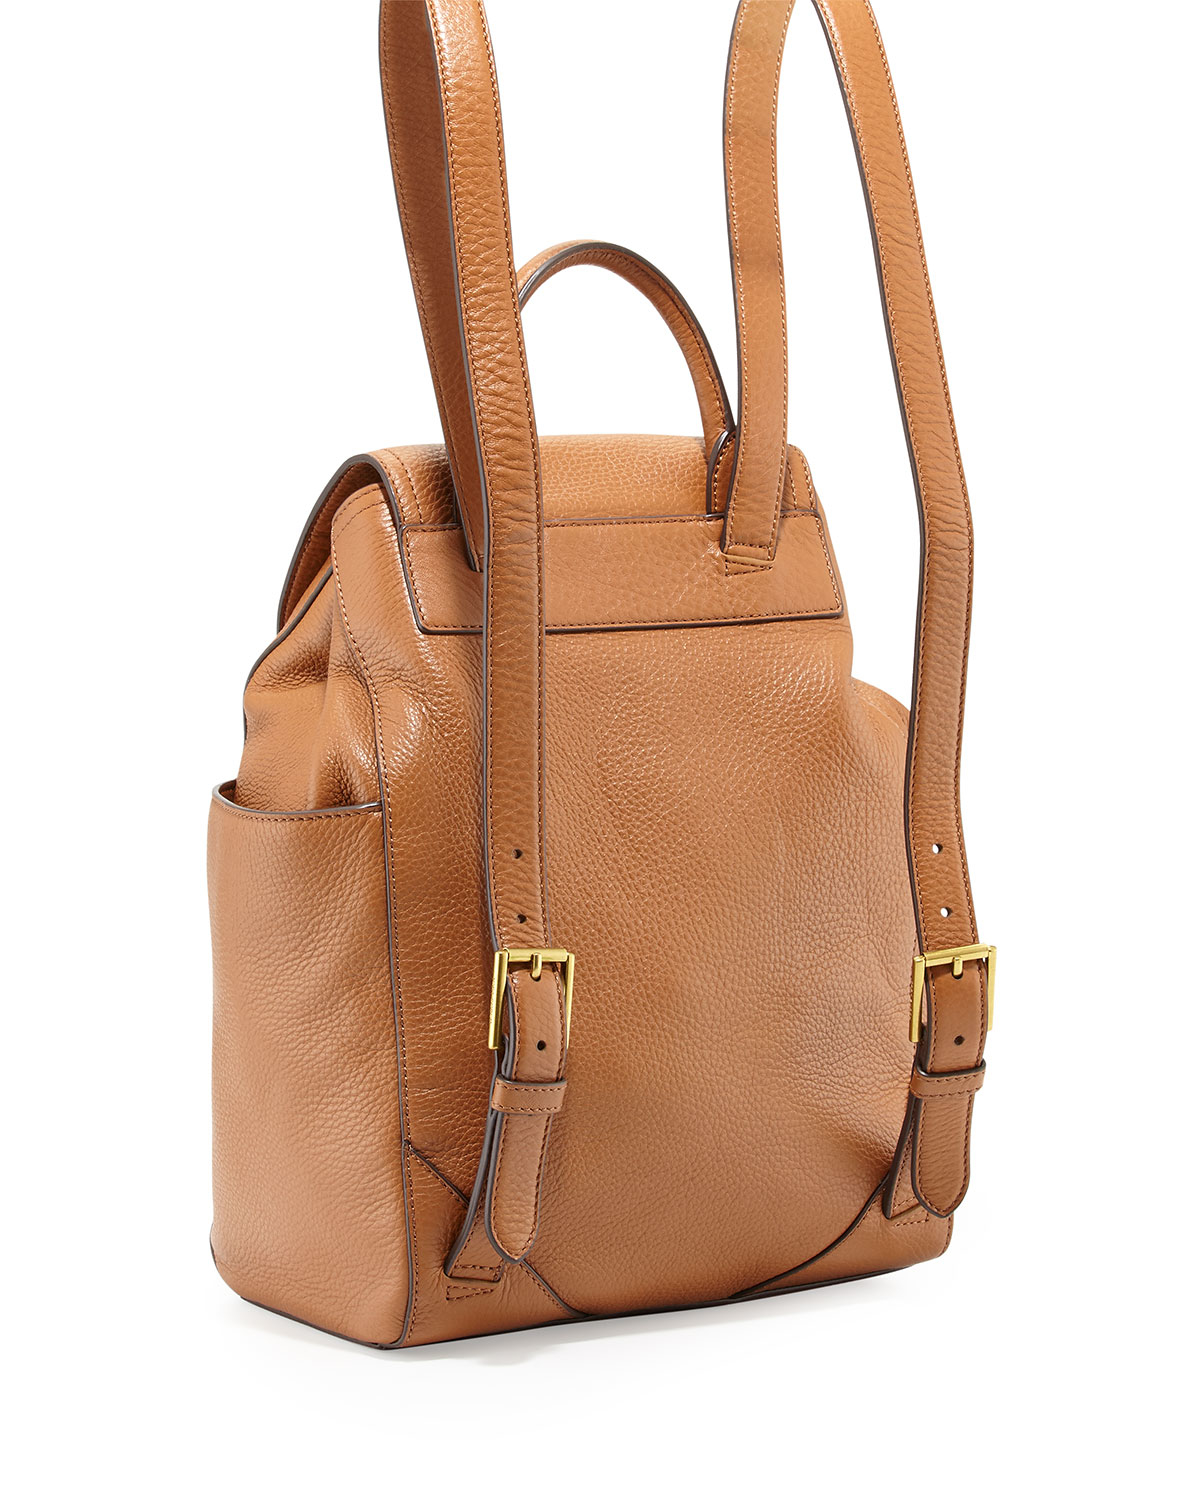 Tory burch Frances Leather Flap Backpack in Natural | Lyst